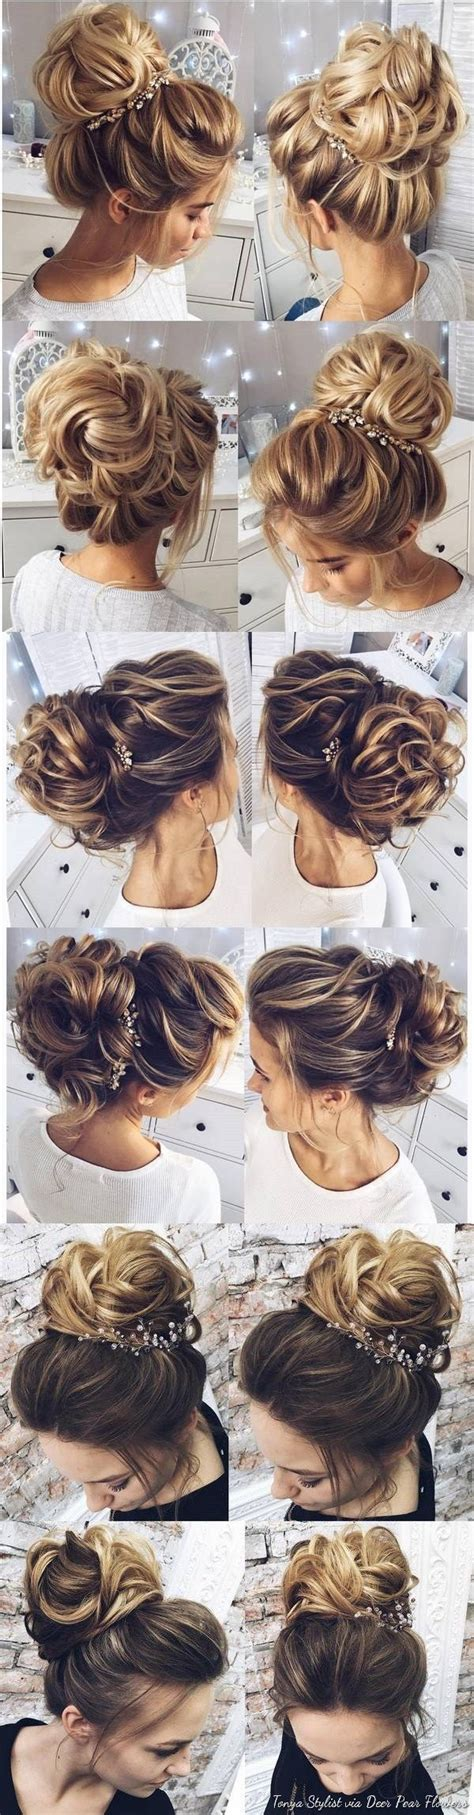 Wedding Hairstyles For A by 25 Best Ideas About Wedding Hairstyles On